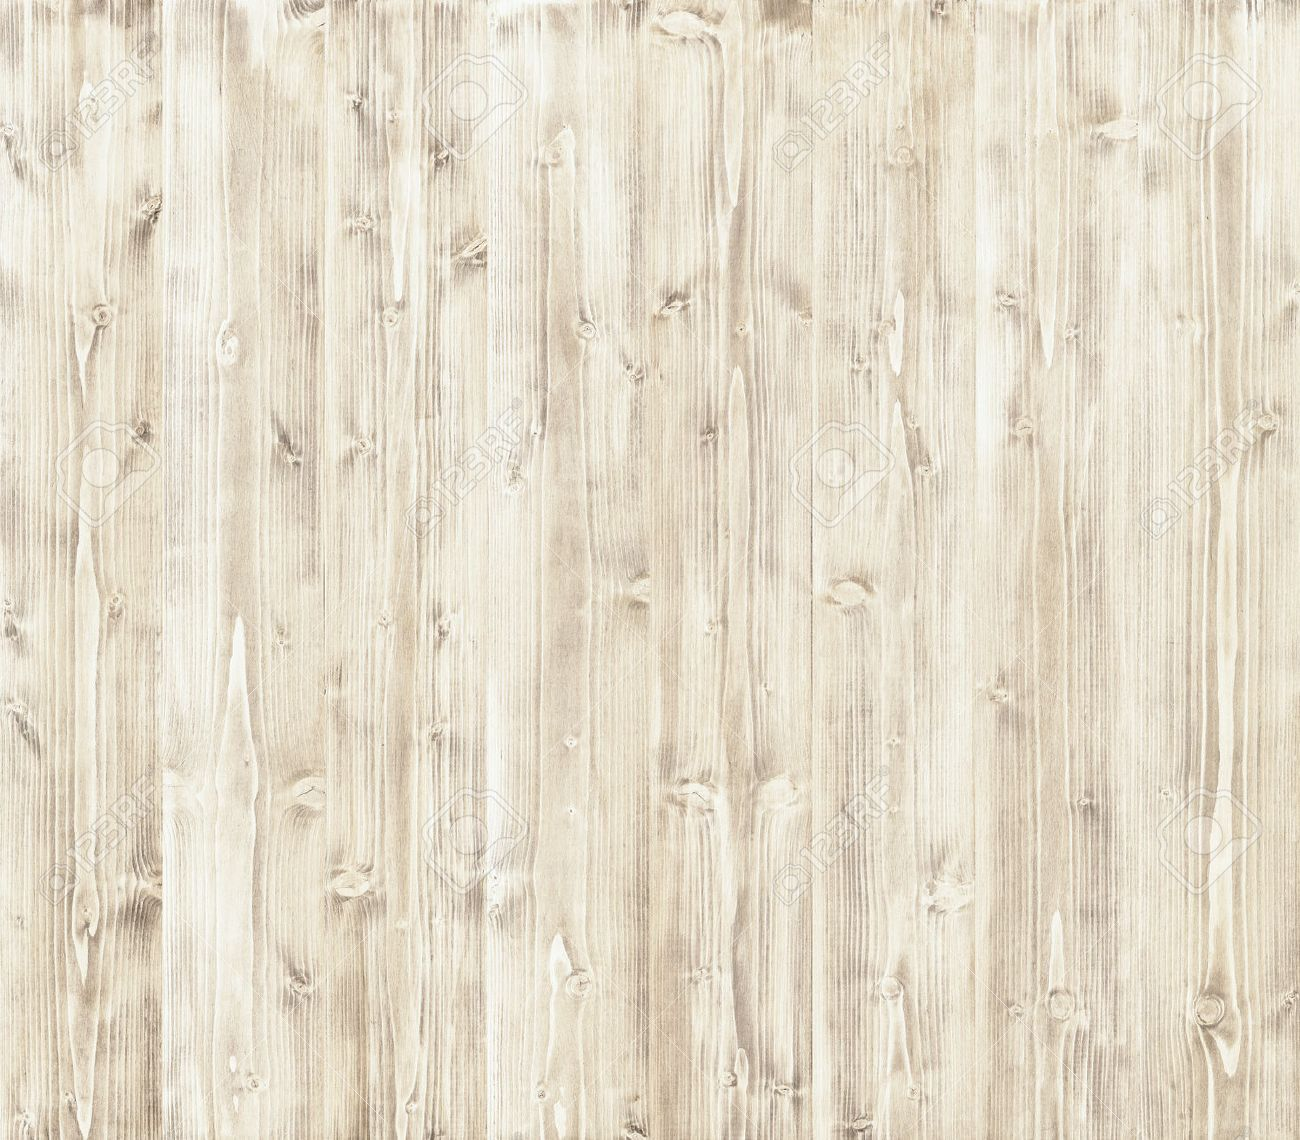 Light wood texture - Stock Photo Wooden Texture Light Wood Background